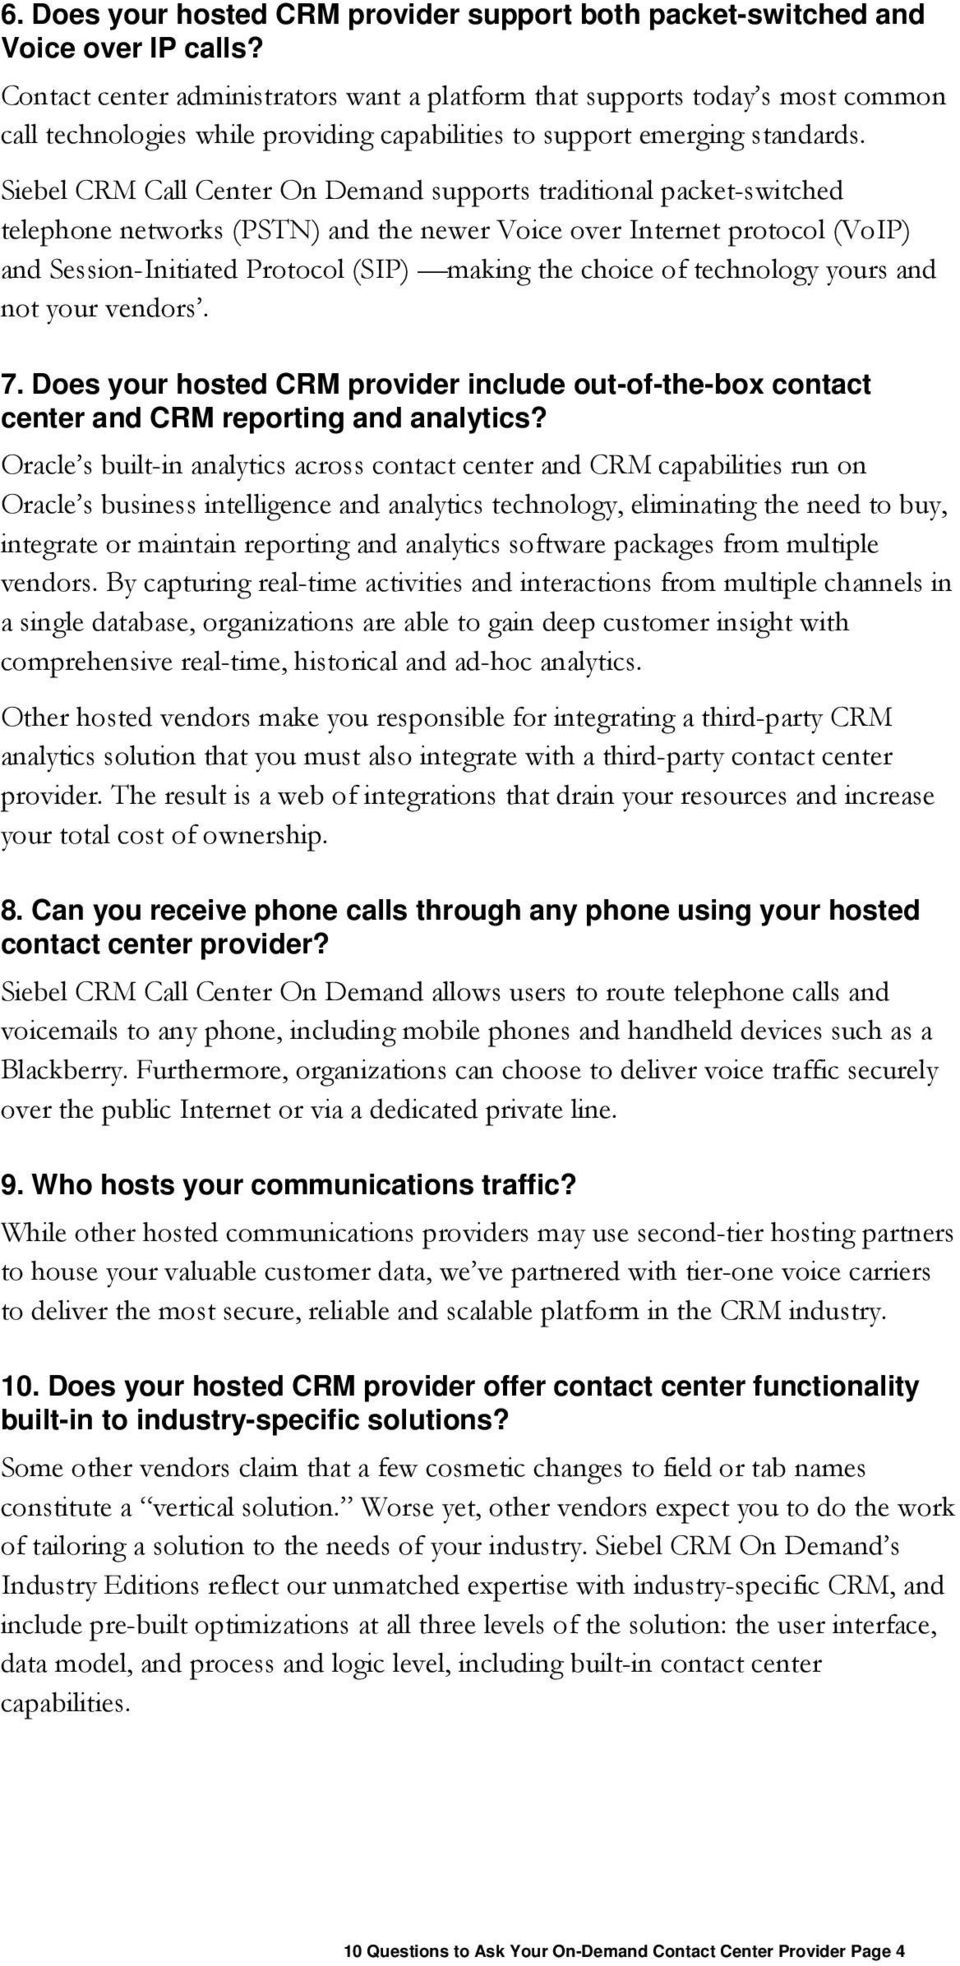 Siebel CRM Call Center On Demand supports traditional packet-switched telephone networks (PSTN) and the newer Voice over Internet protocol (VoIP) and Session-Initiated Protocol (SIP) making the